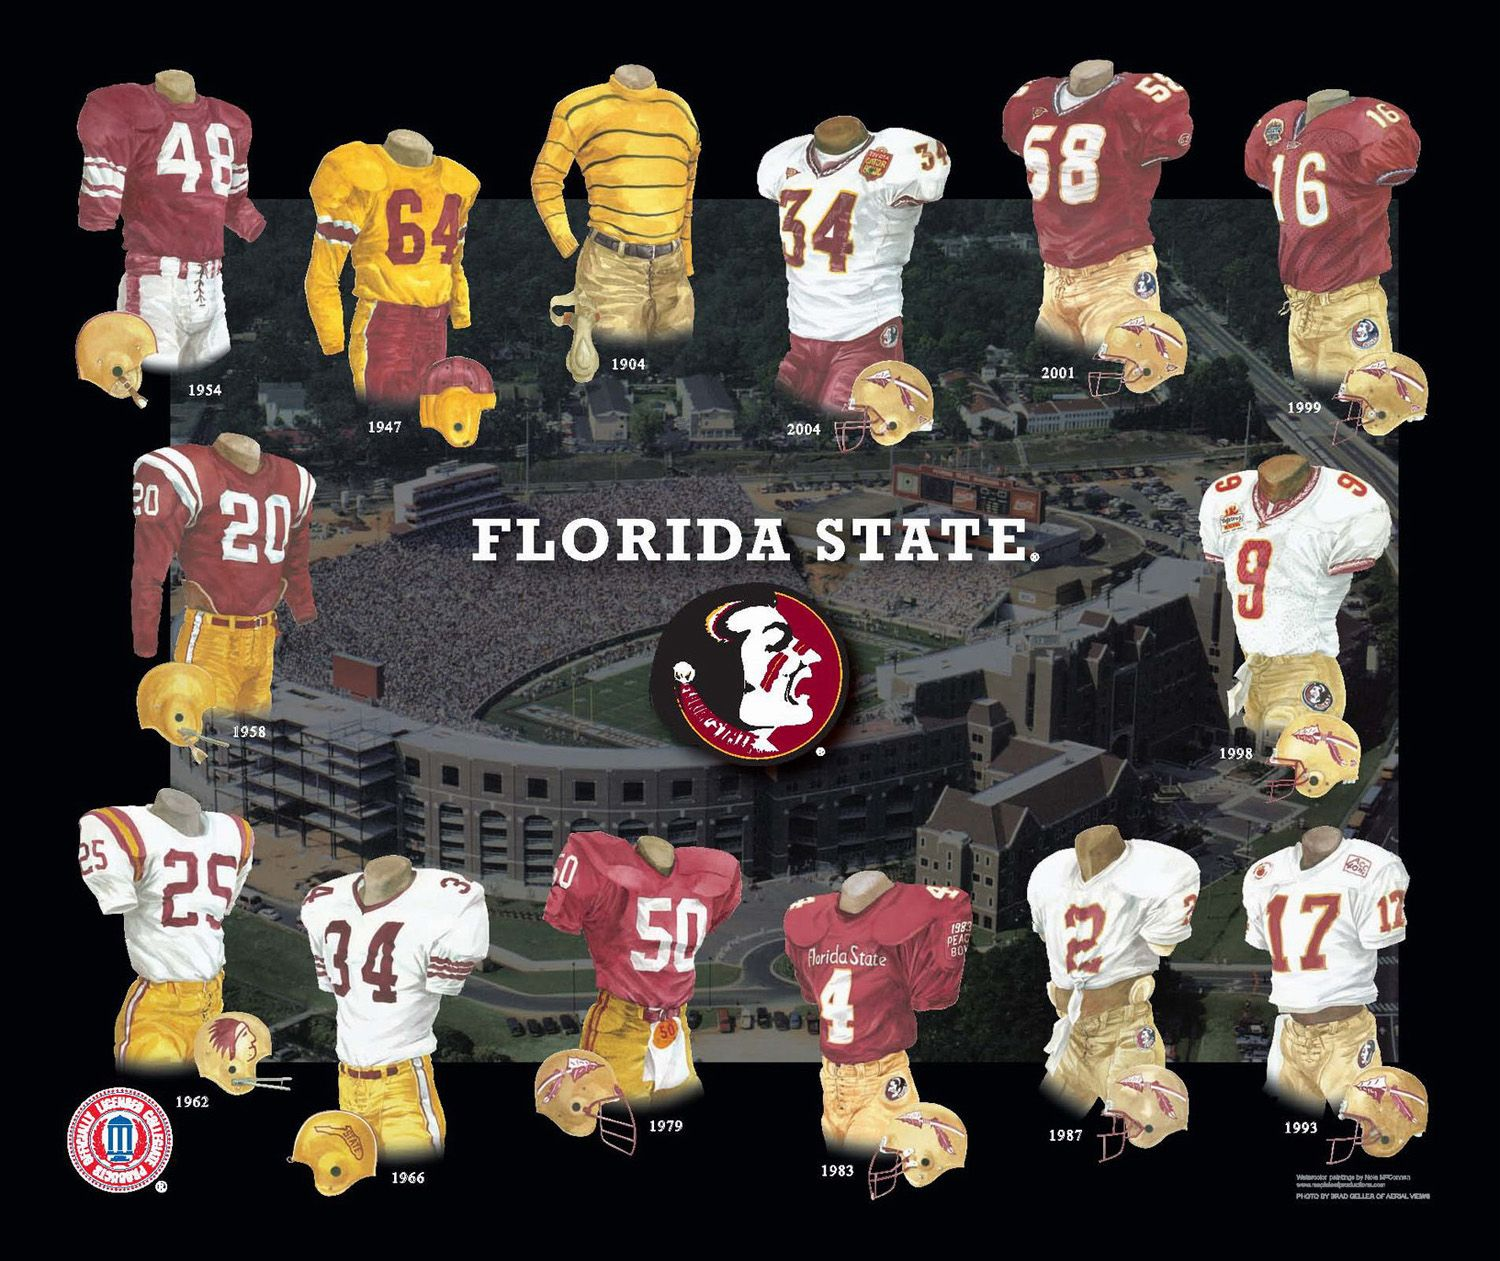 Florida State Seminoles Football Uniform And Team History Florida State Seminoles Football Seminoles Football Florida State Football